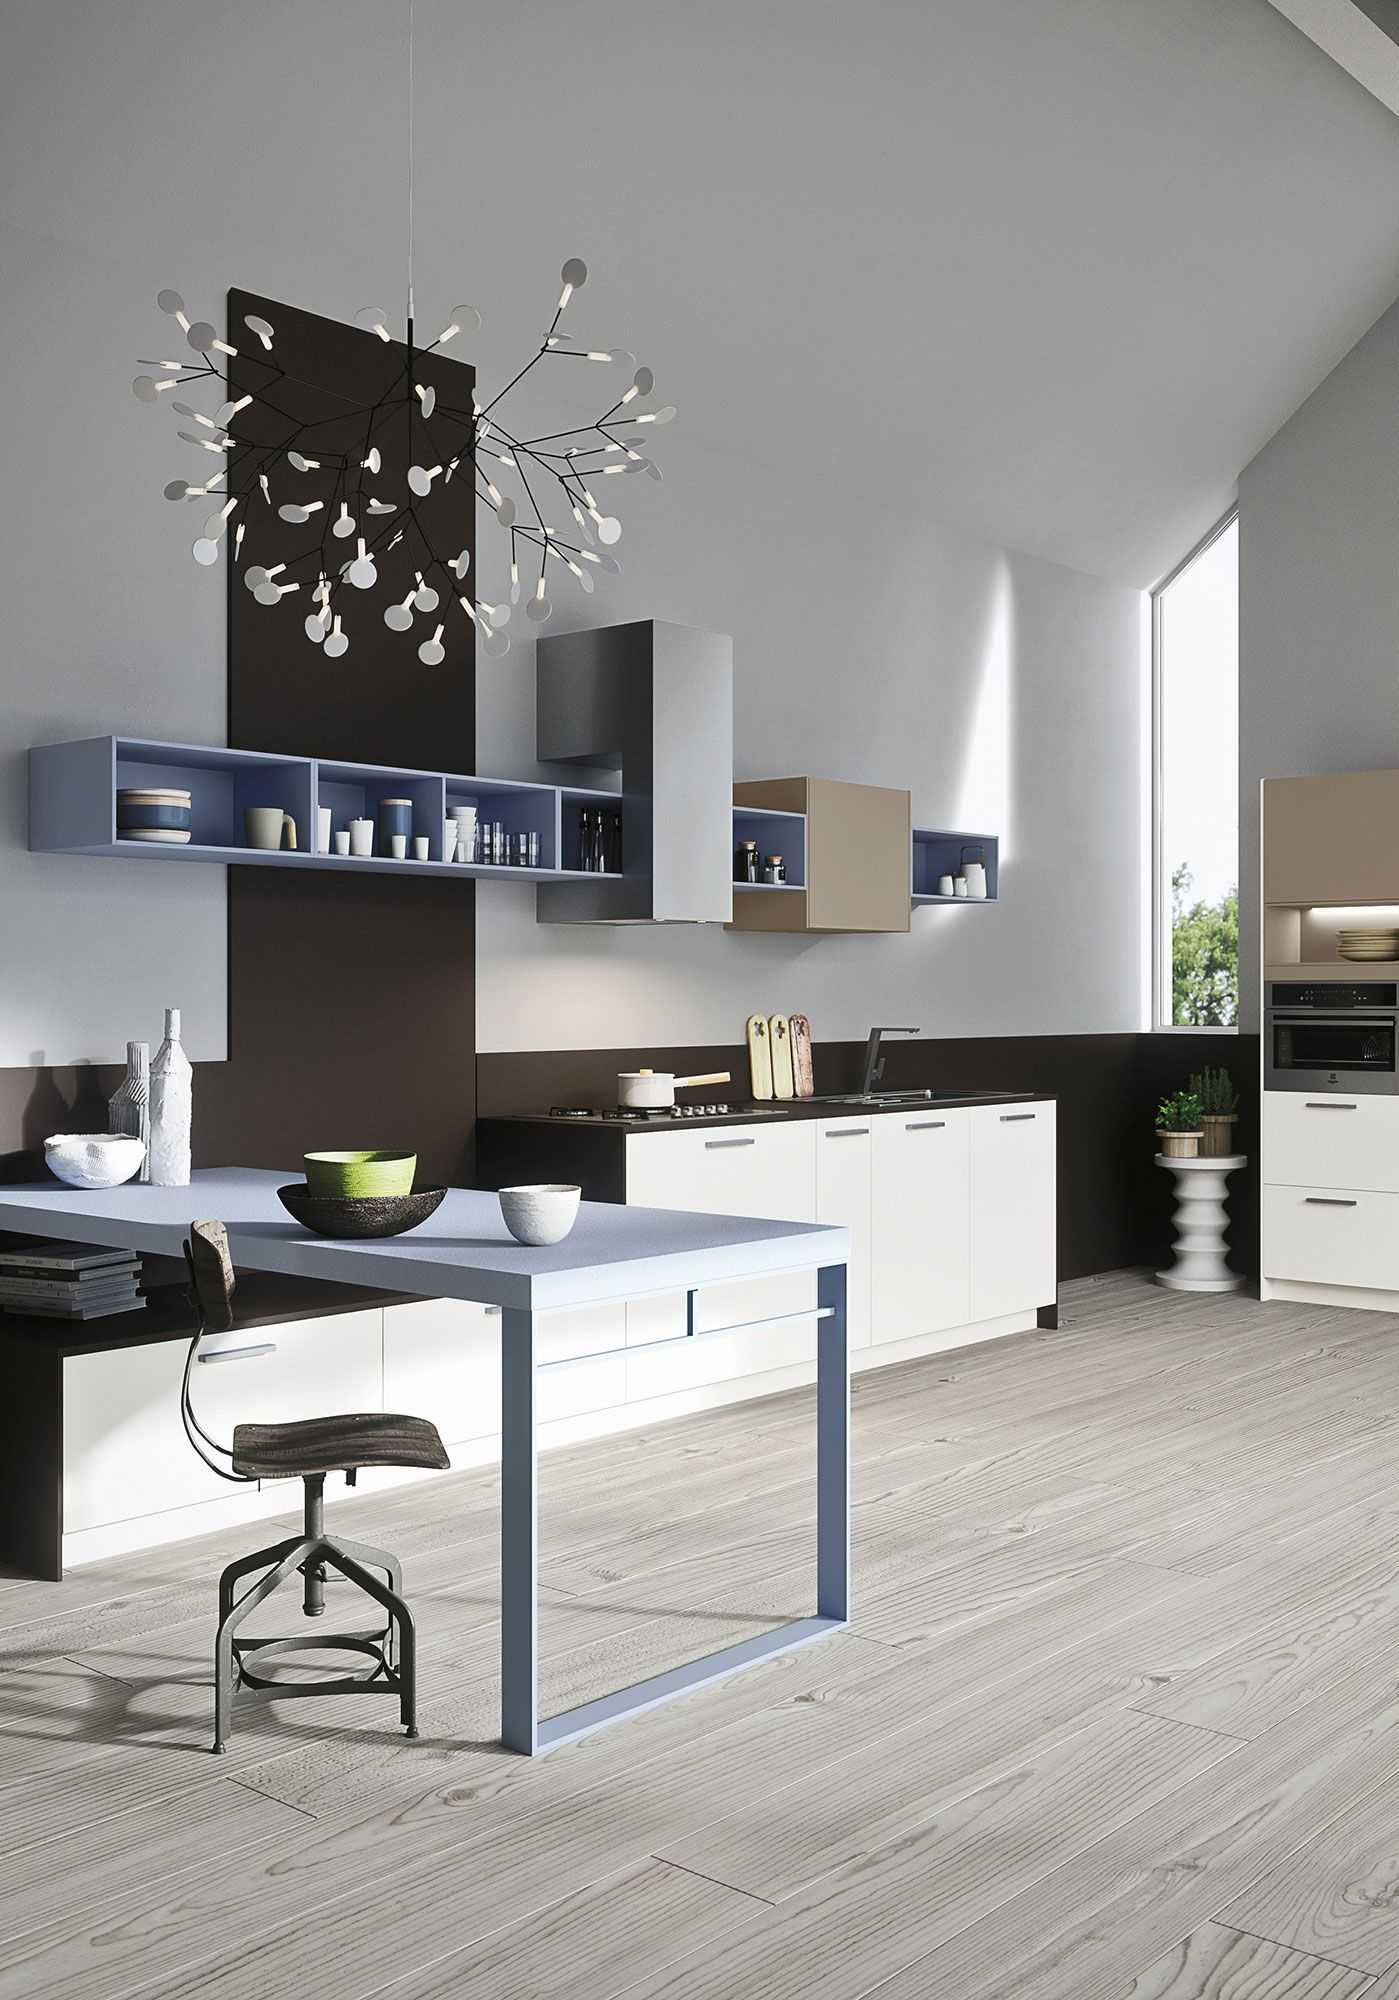 Great tips on making your kitchen stylish kitchen remodal design